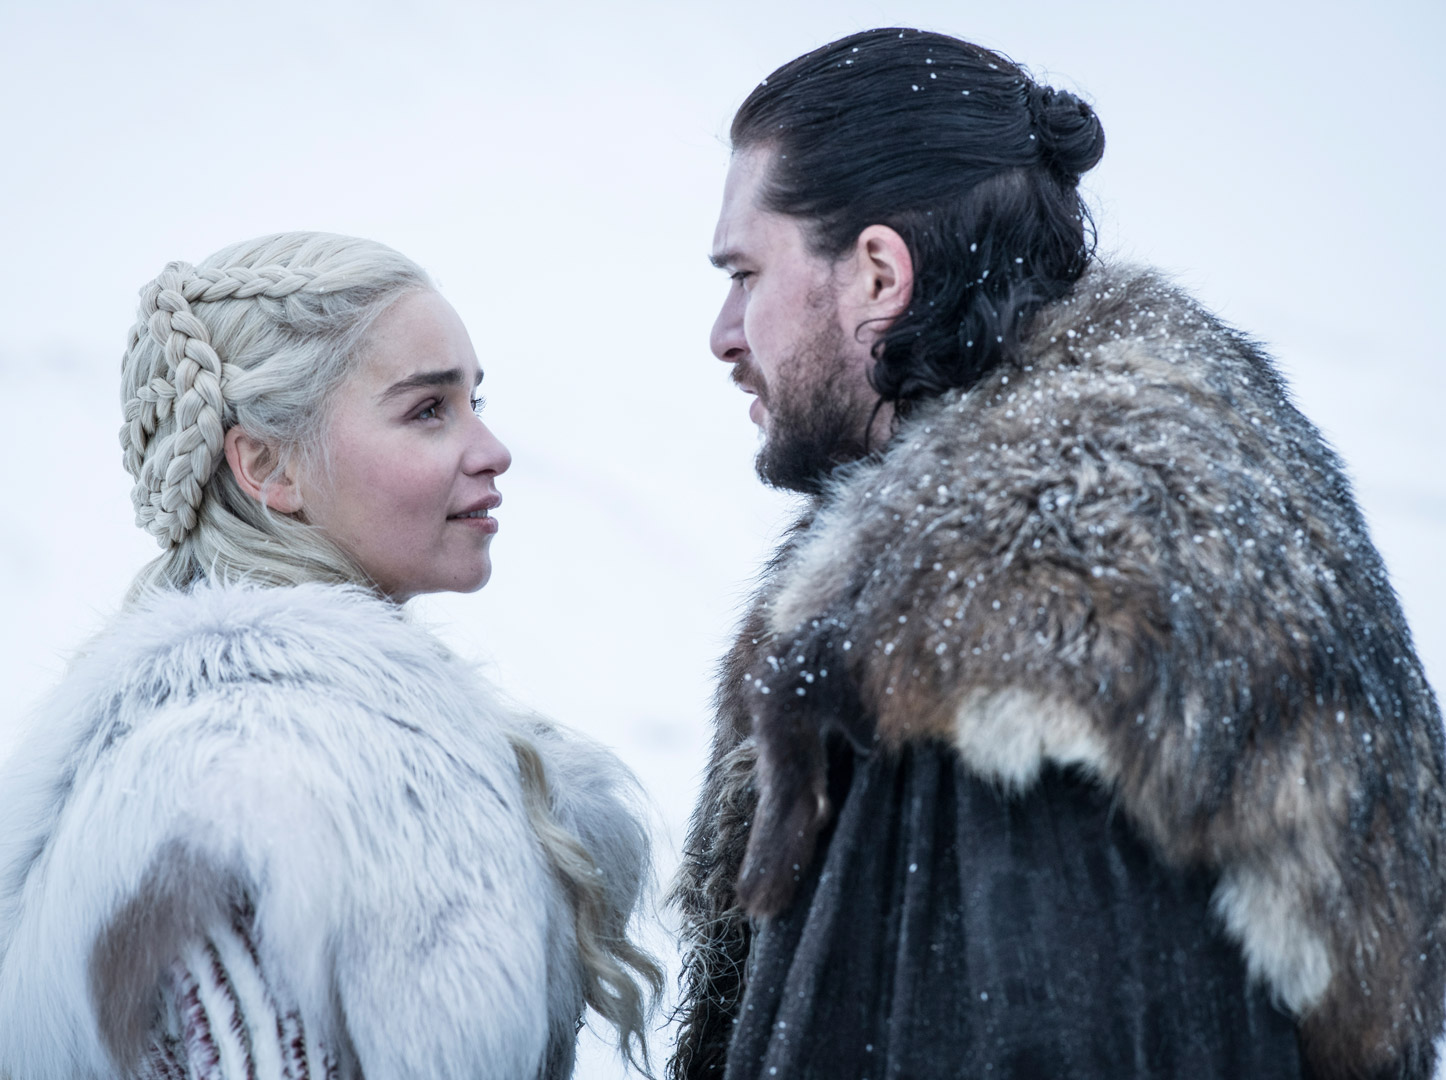 Daenerys and Jon Snow show off their matching fur outfits